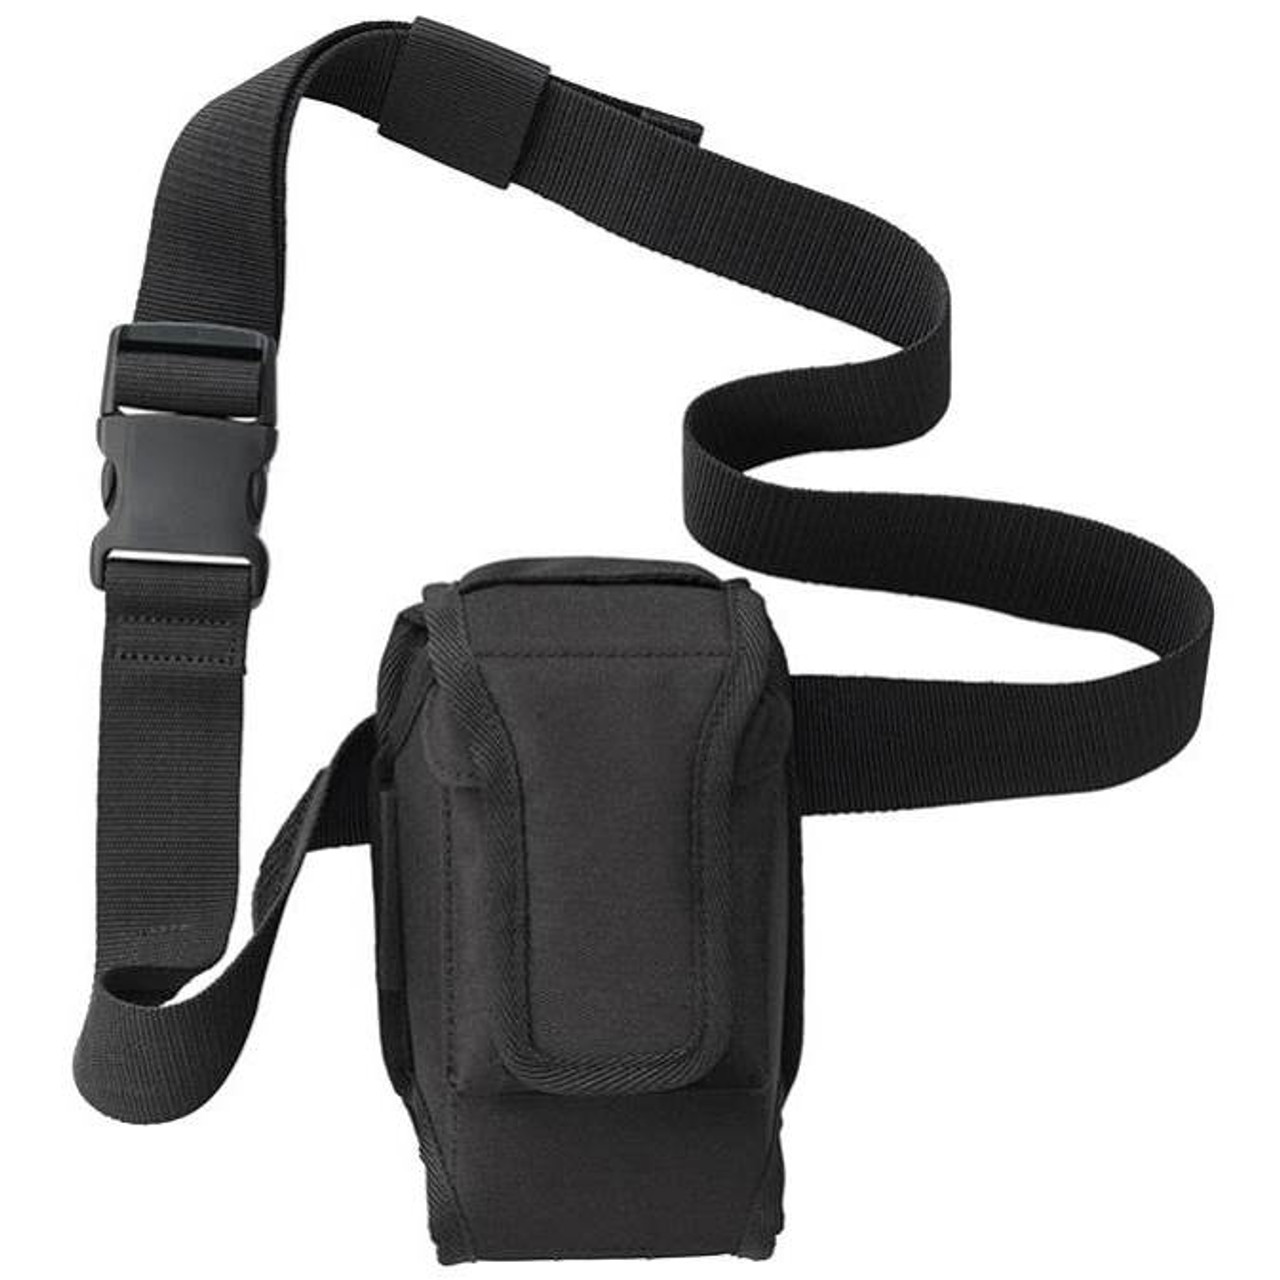 Image for Panasonic FZ-N1 Holster CX Computer Superstore